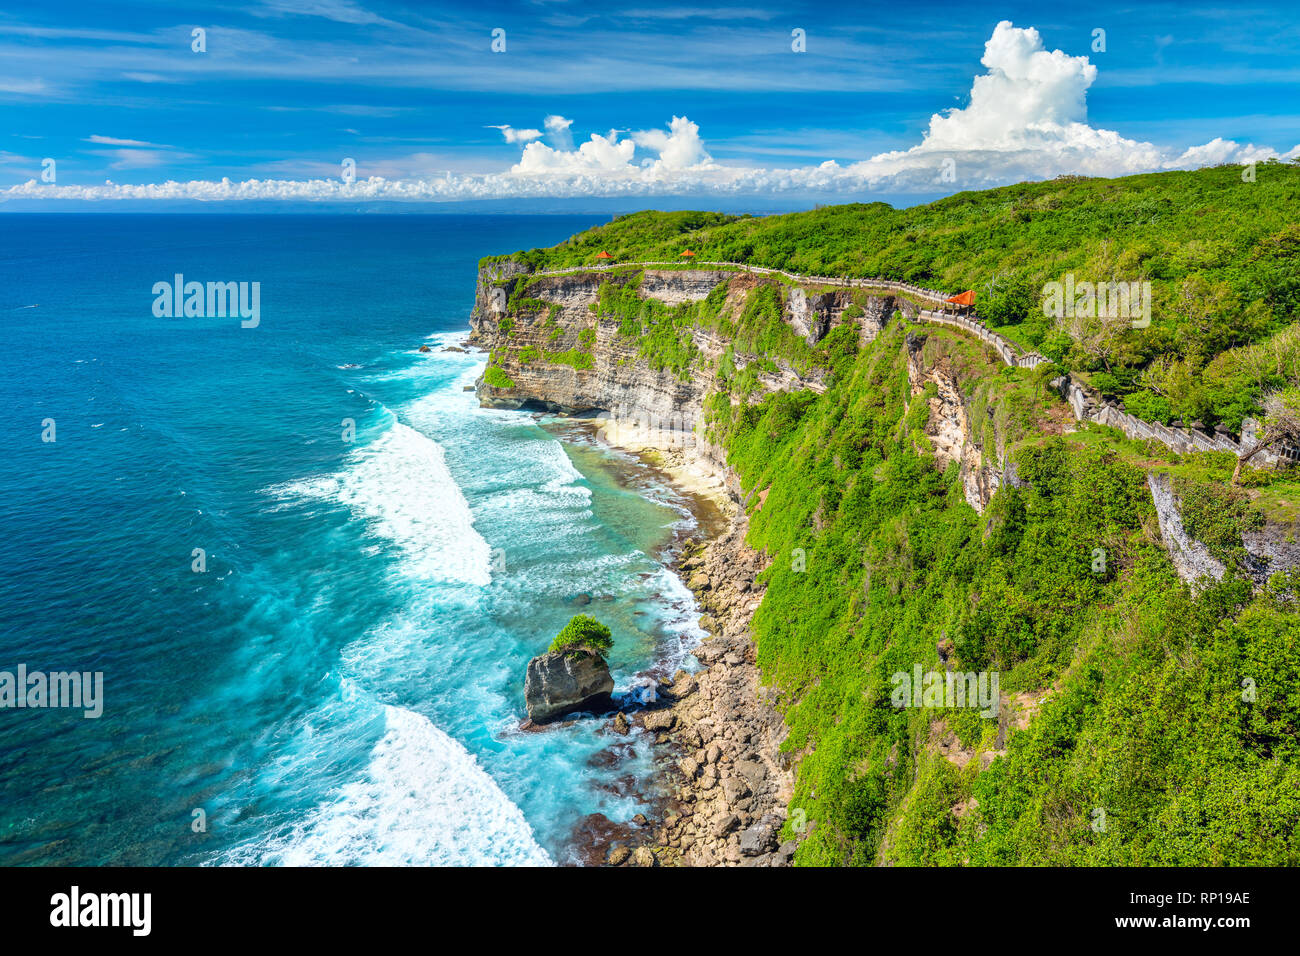 Landscape of Ocean and Rocks, colorful and beautiful place